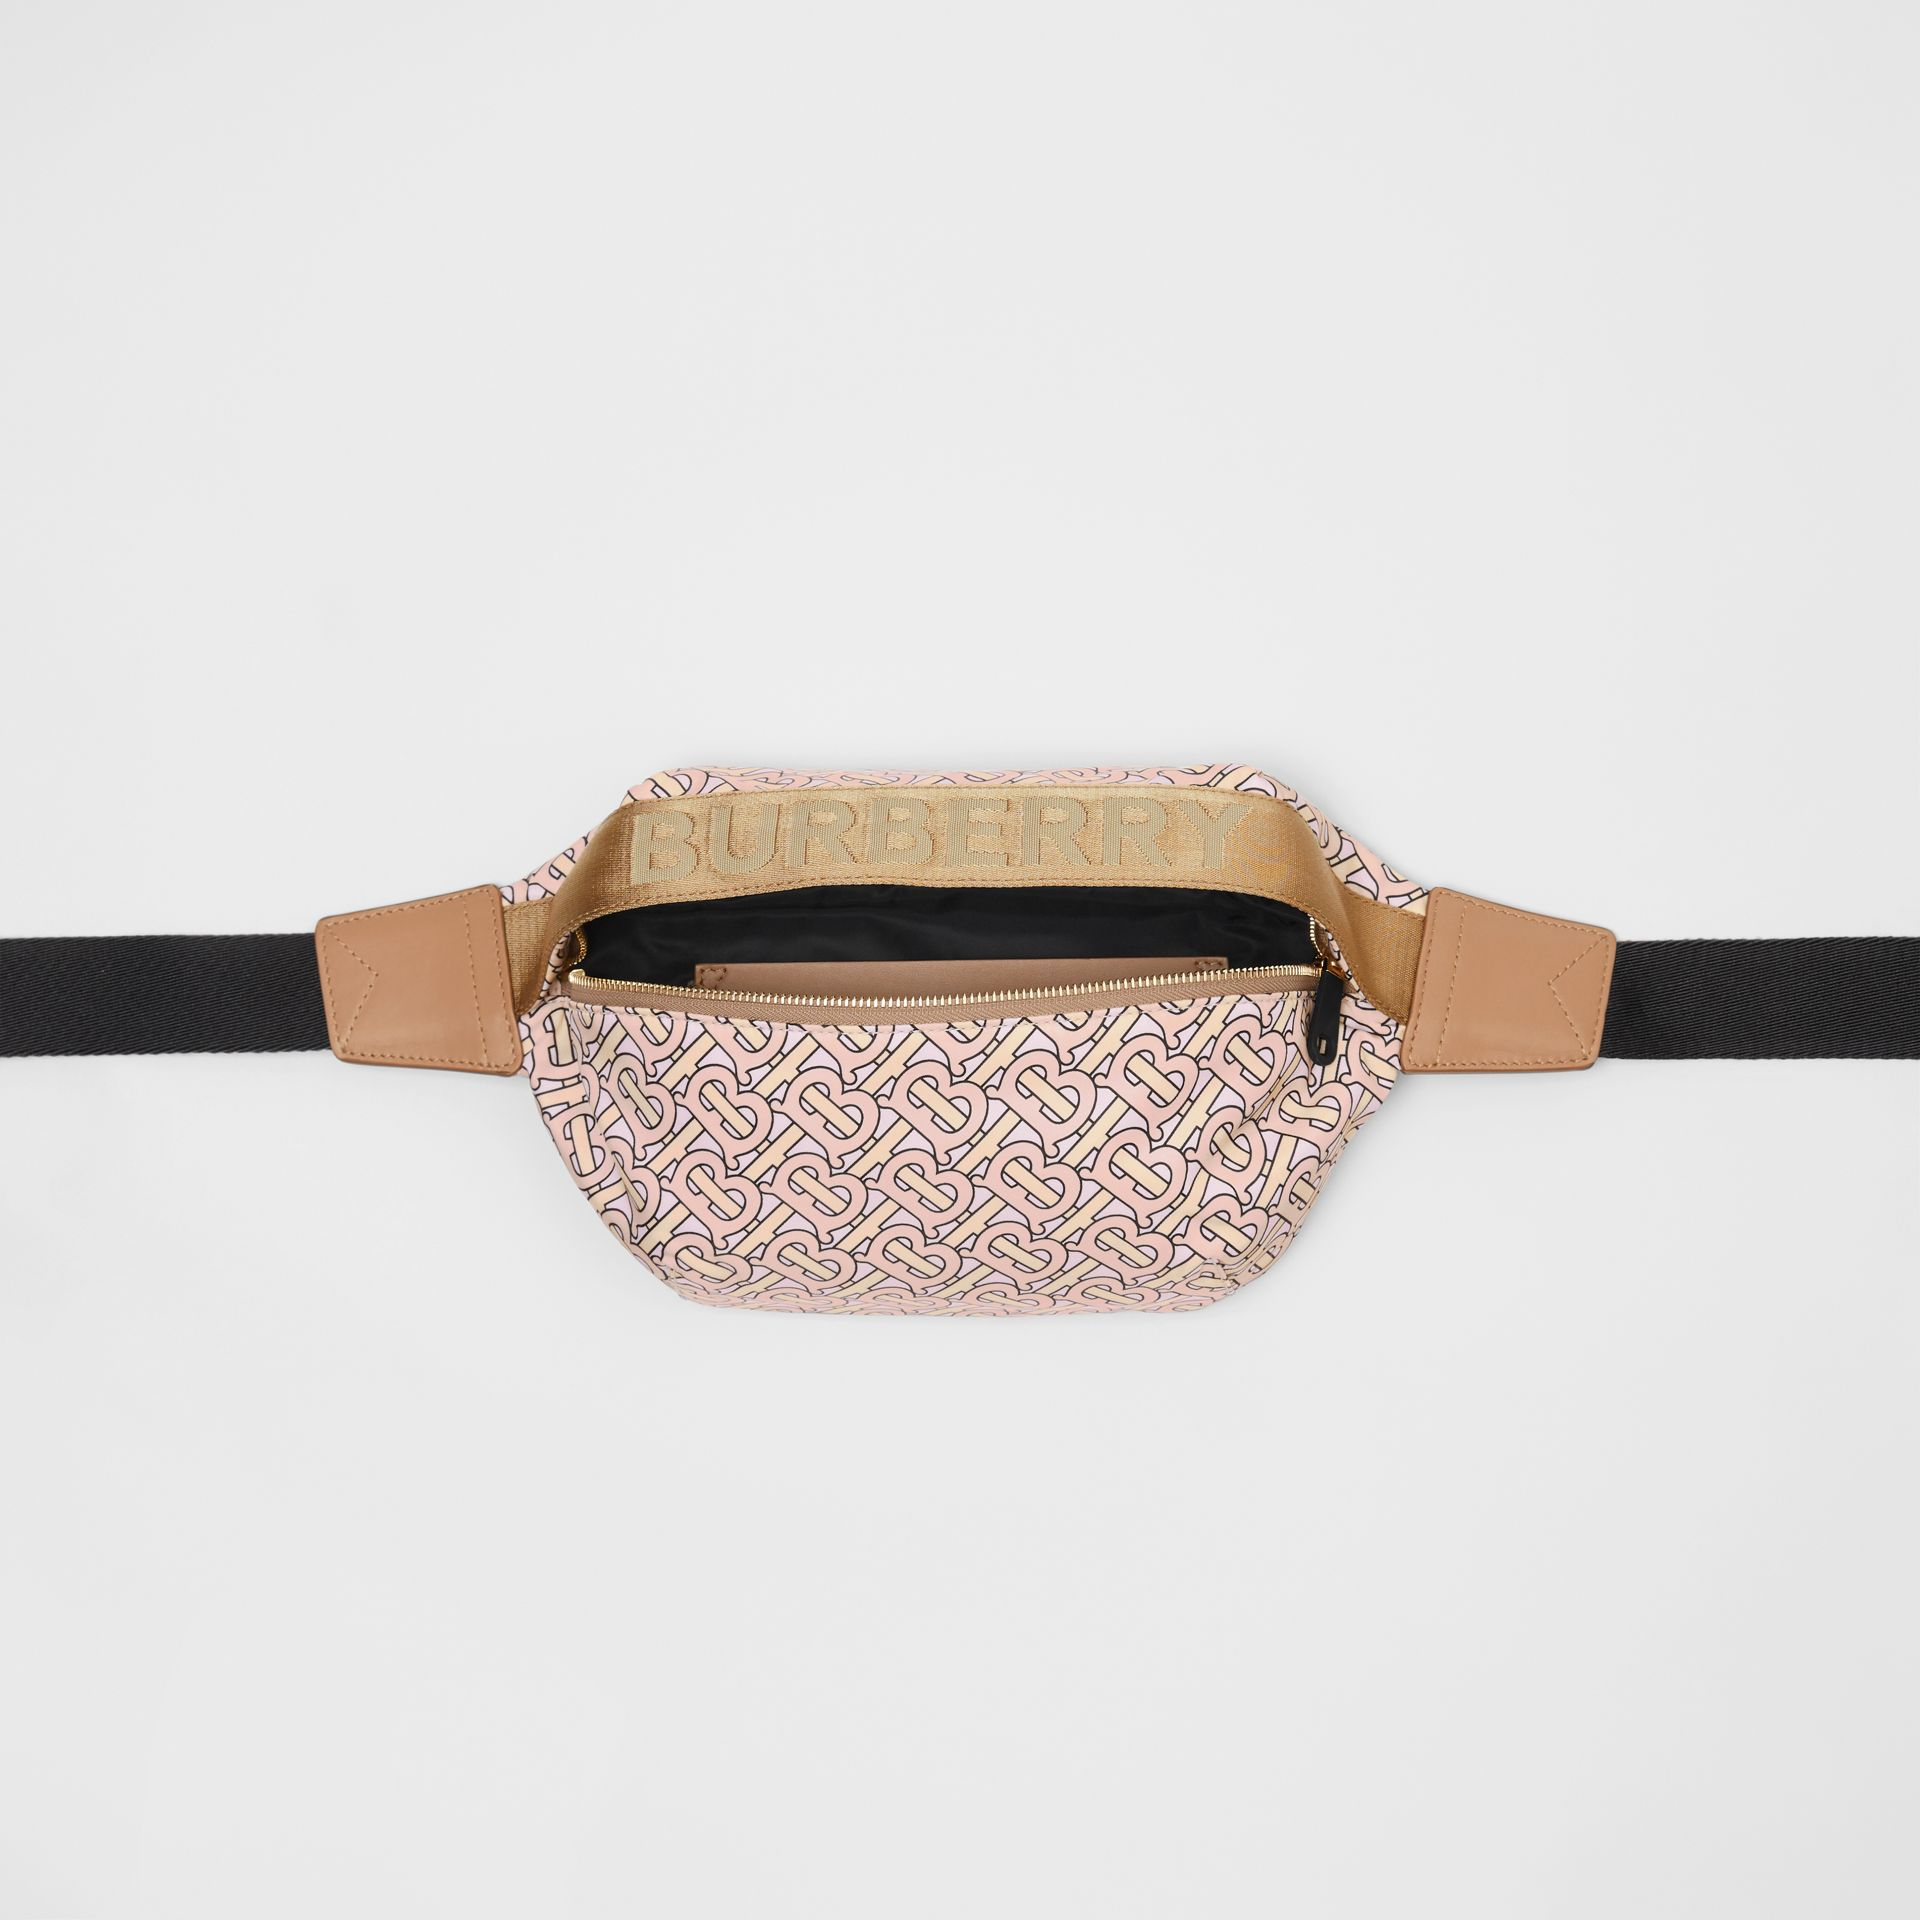 Medium Monogram Print Bum Bag in Blush | Burberry - gallery image 3